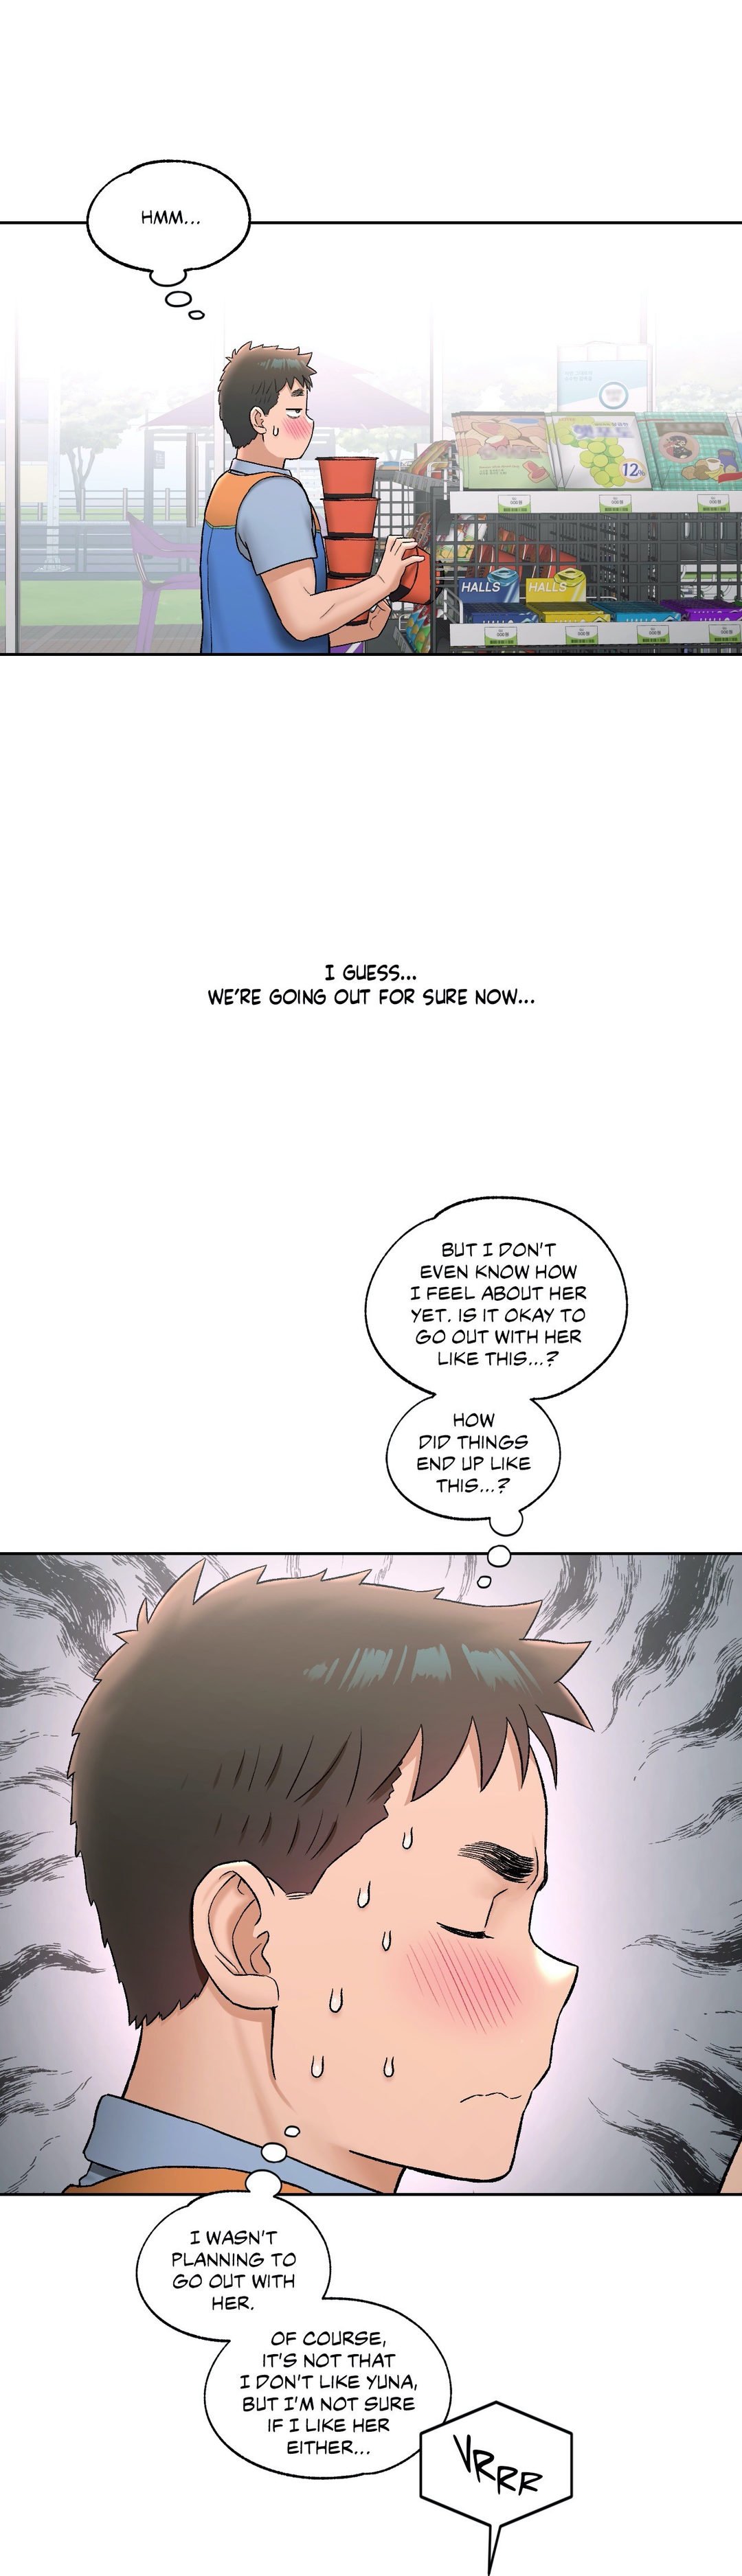 Sexercise - Chapter 62 Page 22